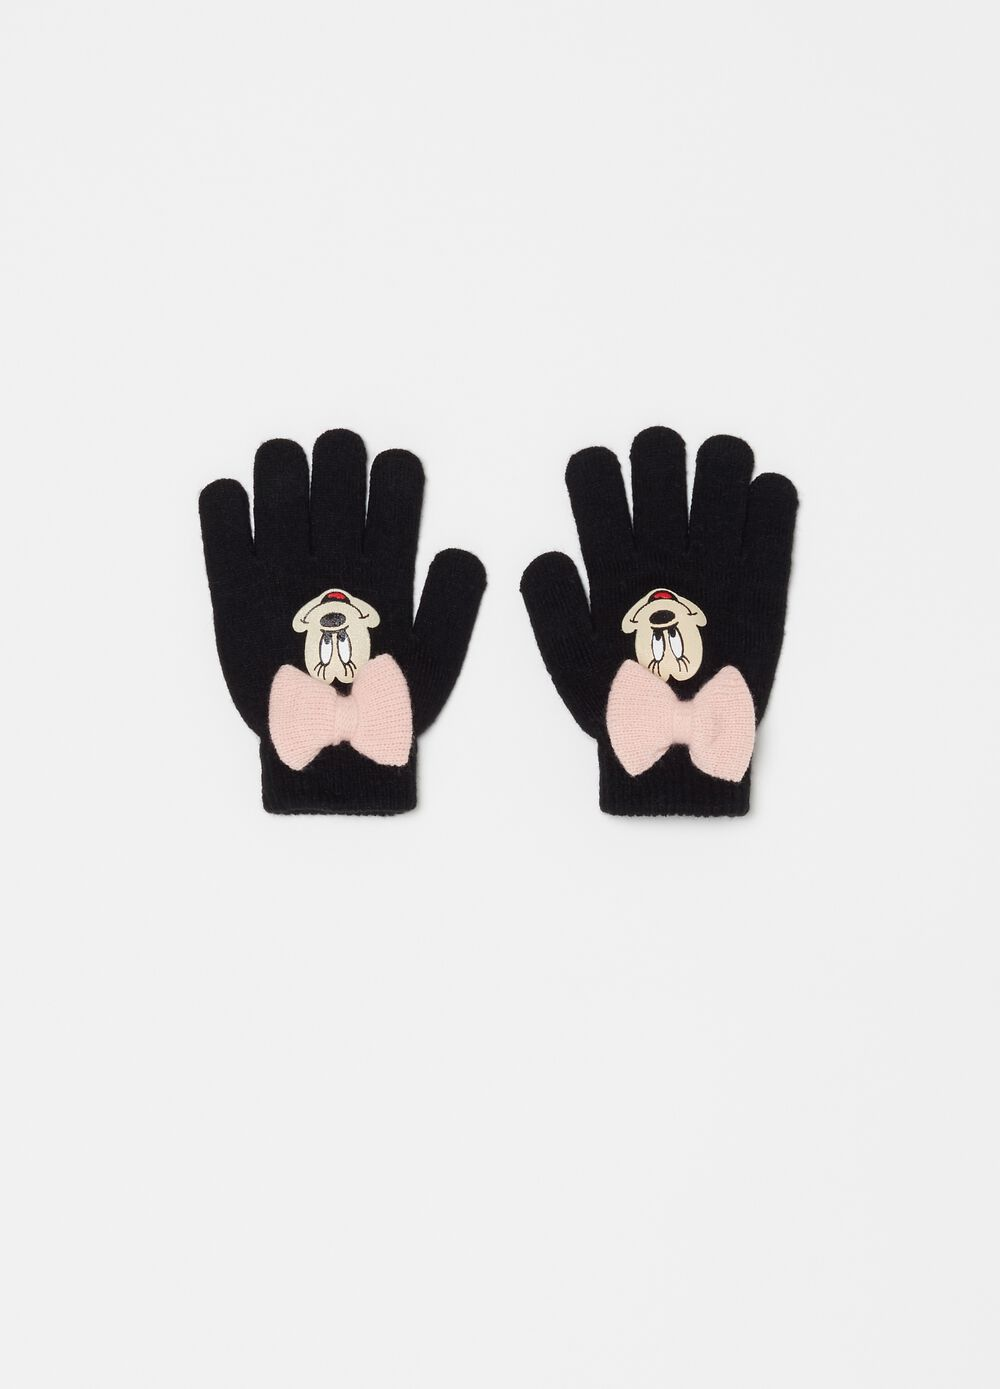 Knitted gloves with Disney Minnie Mouse print